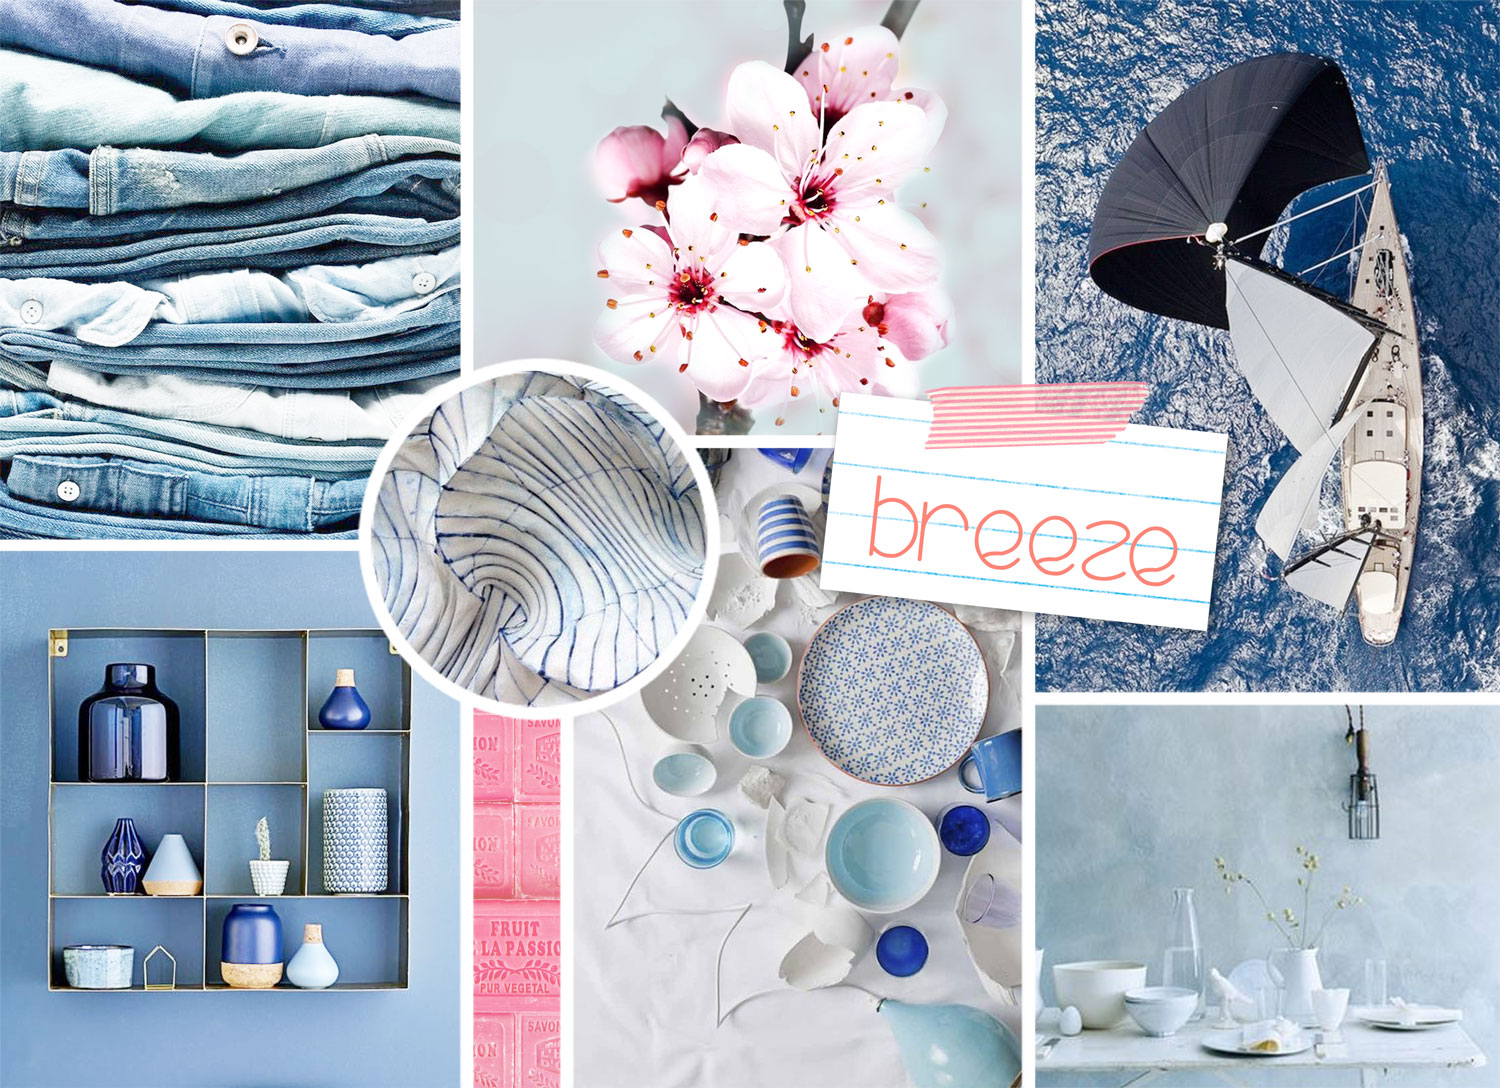 breeze-zen-chic